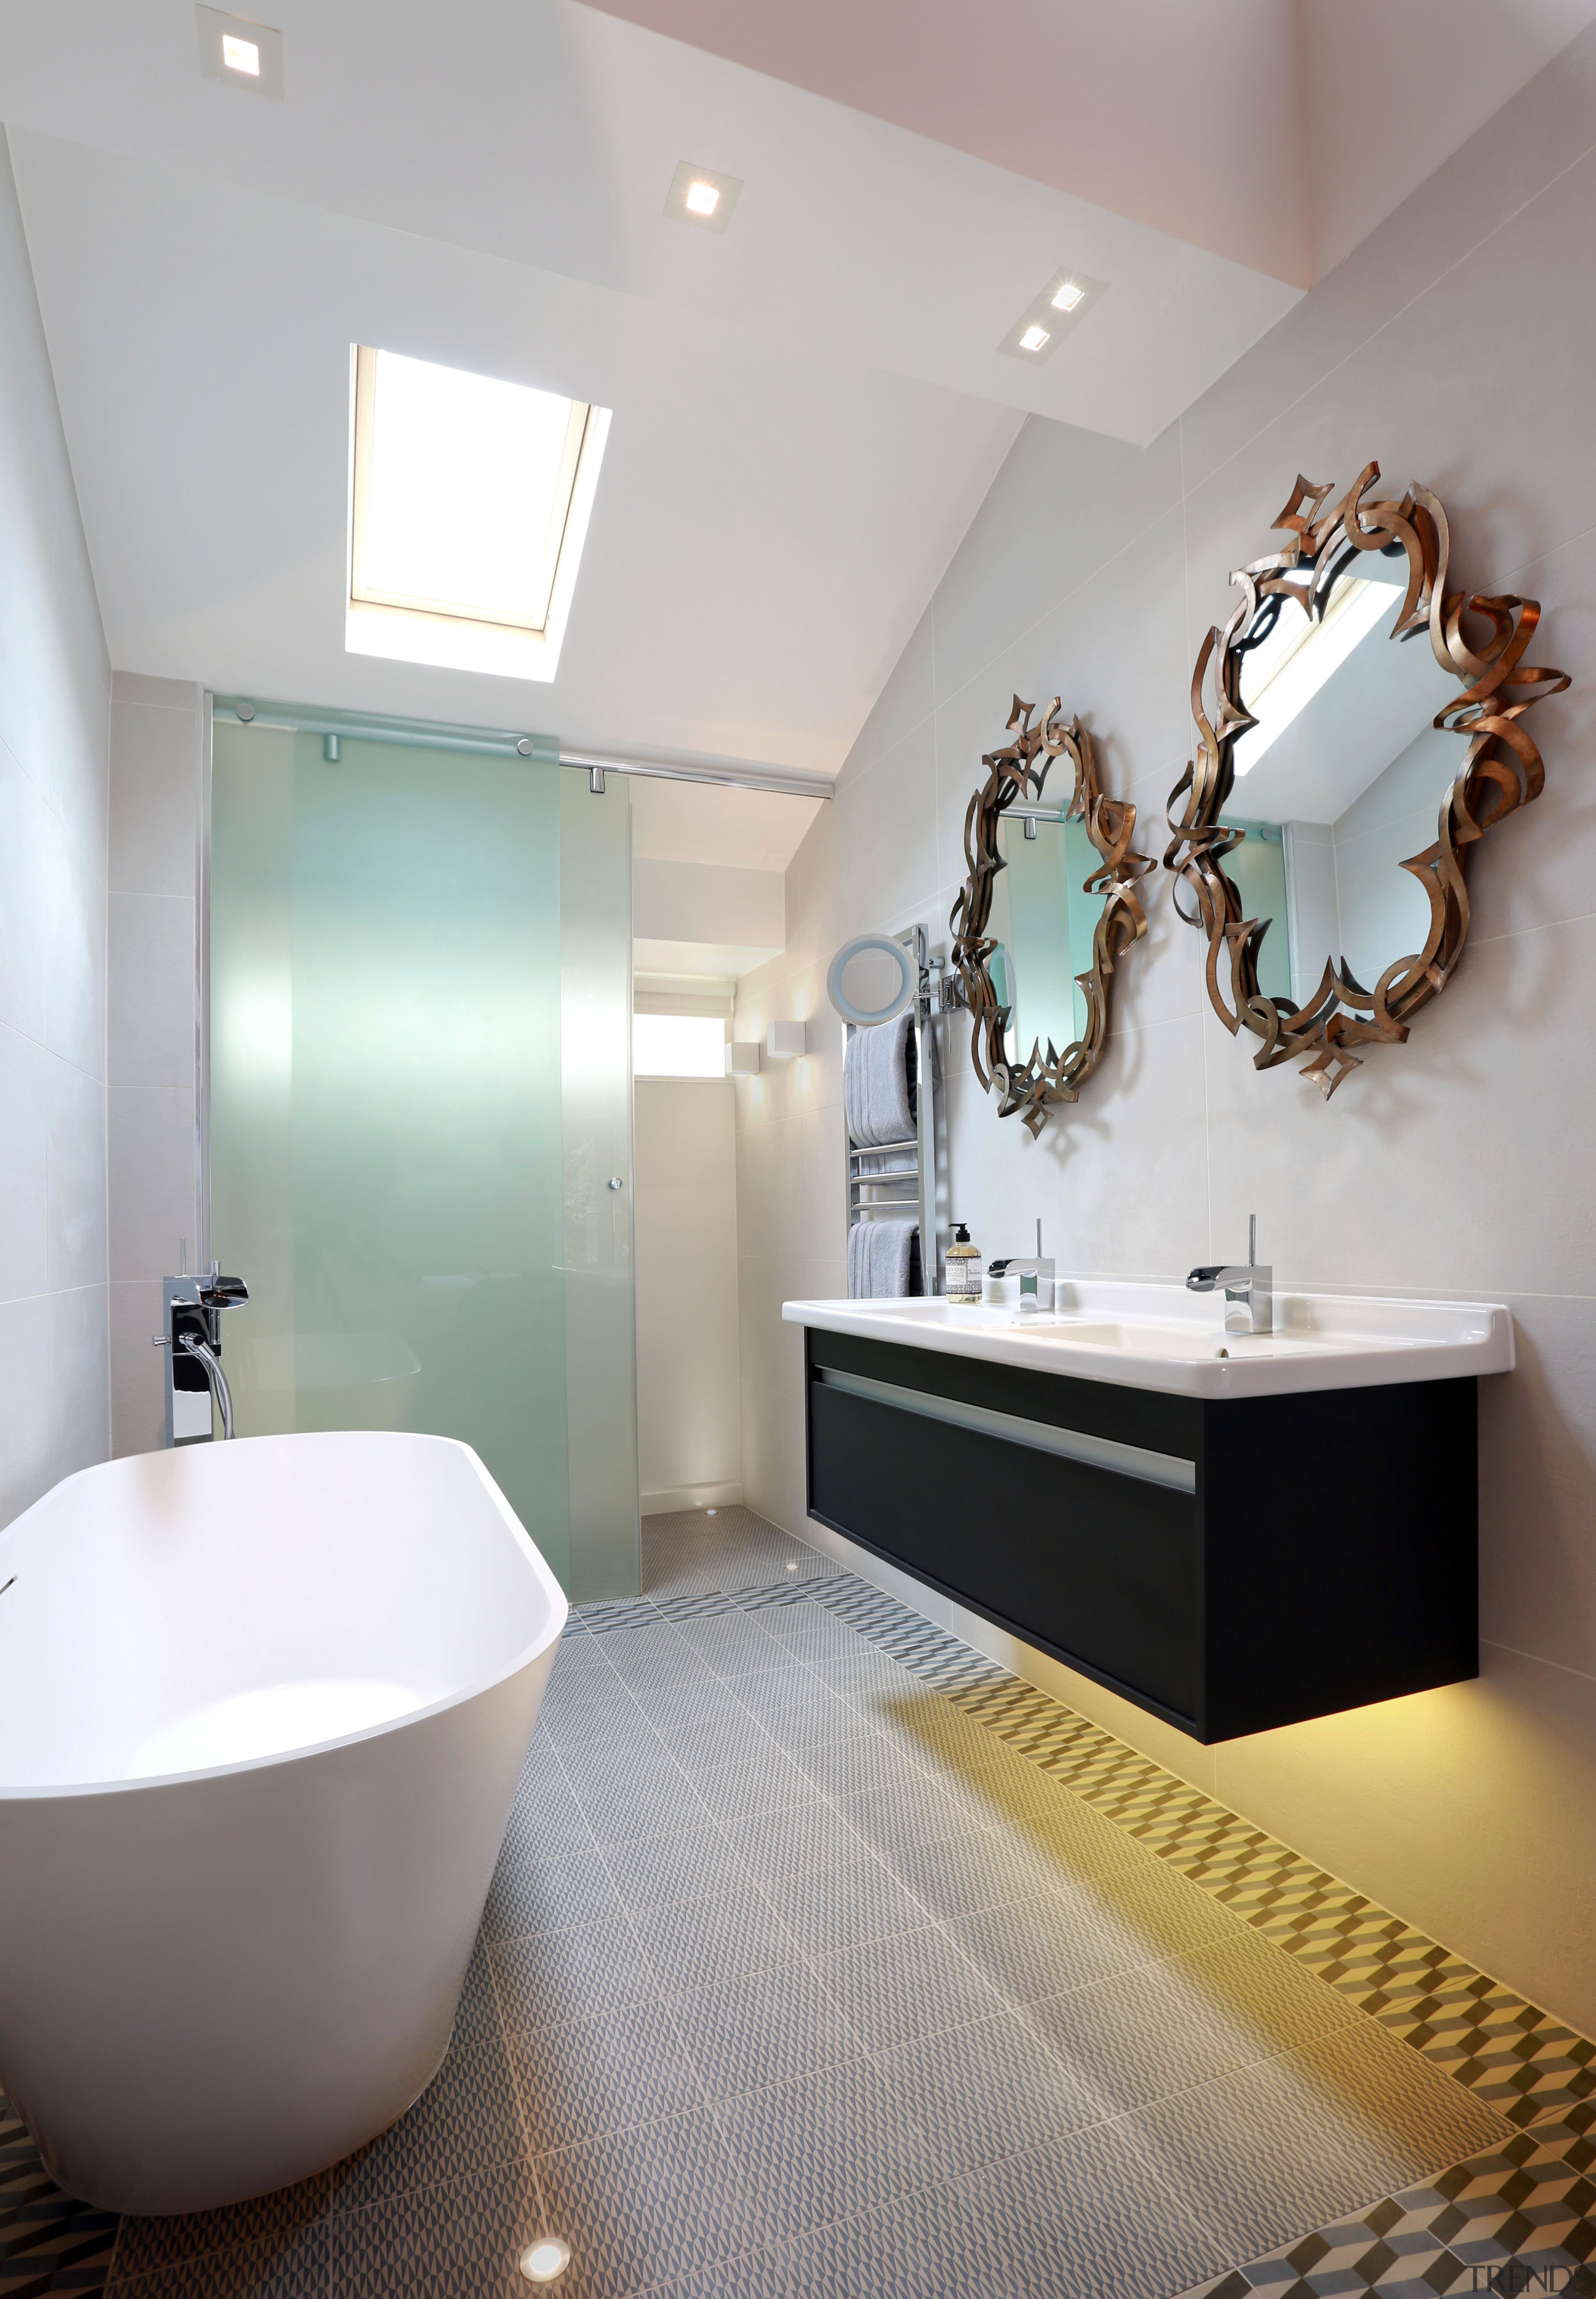 For this renovation project, an opaque green glass bathroom, bathroom accessory, ceiling, floor, interior design, plumbing fixture, room, sink, tap, tile, gray